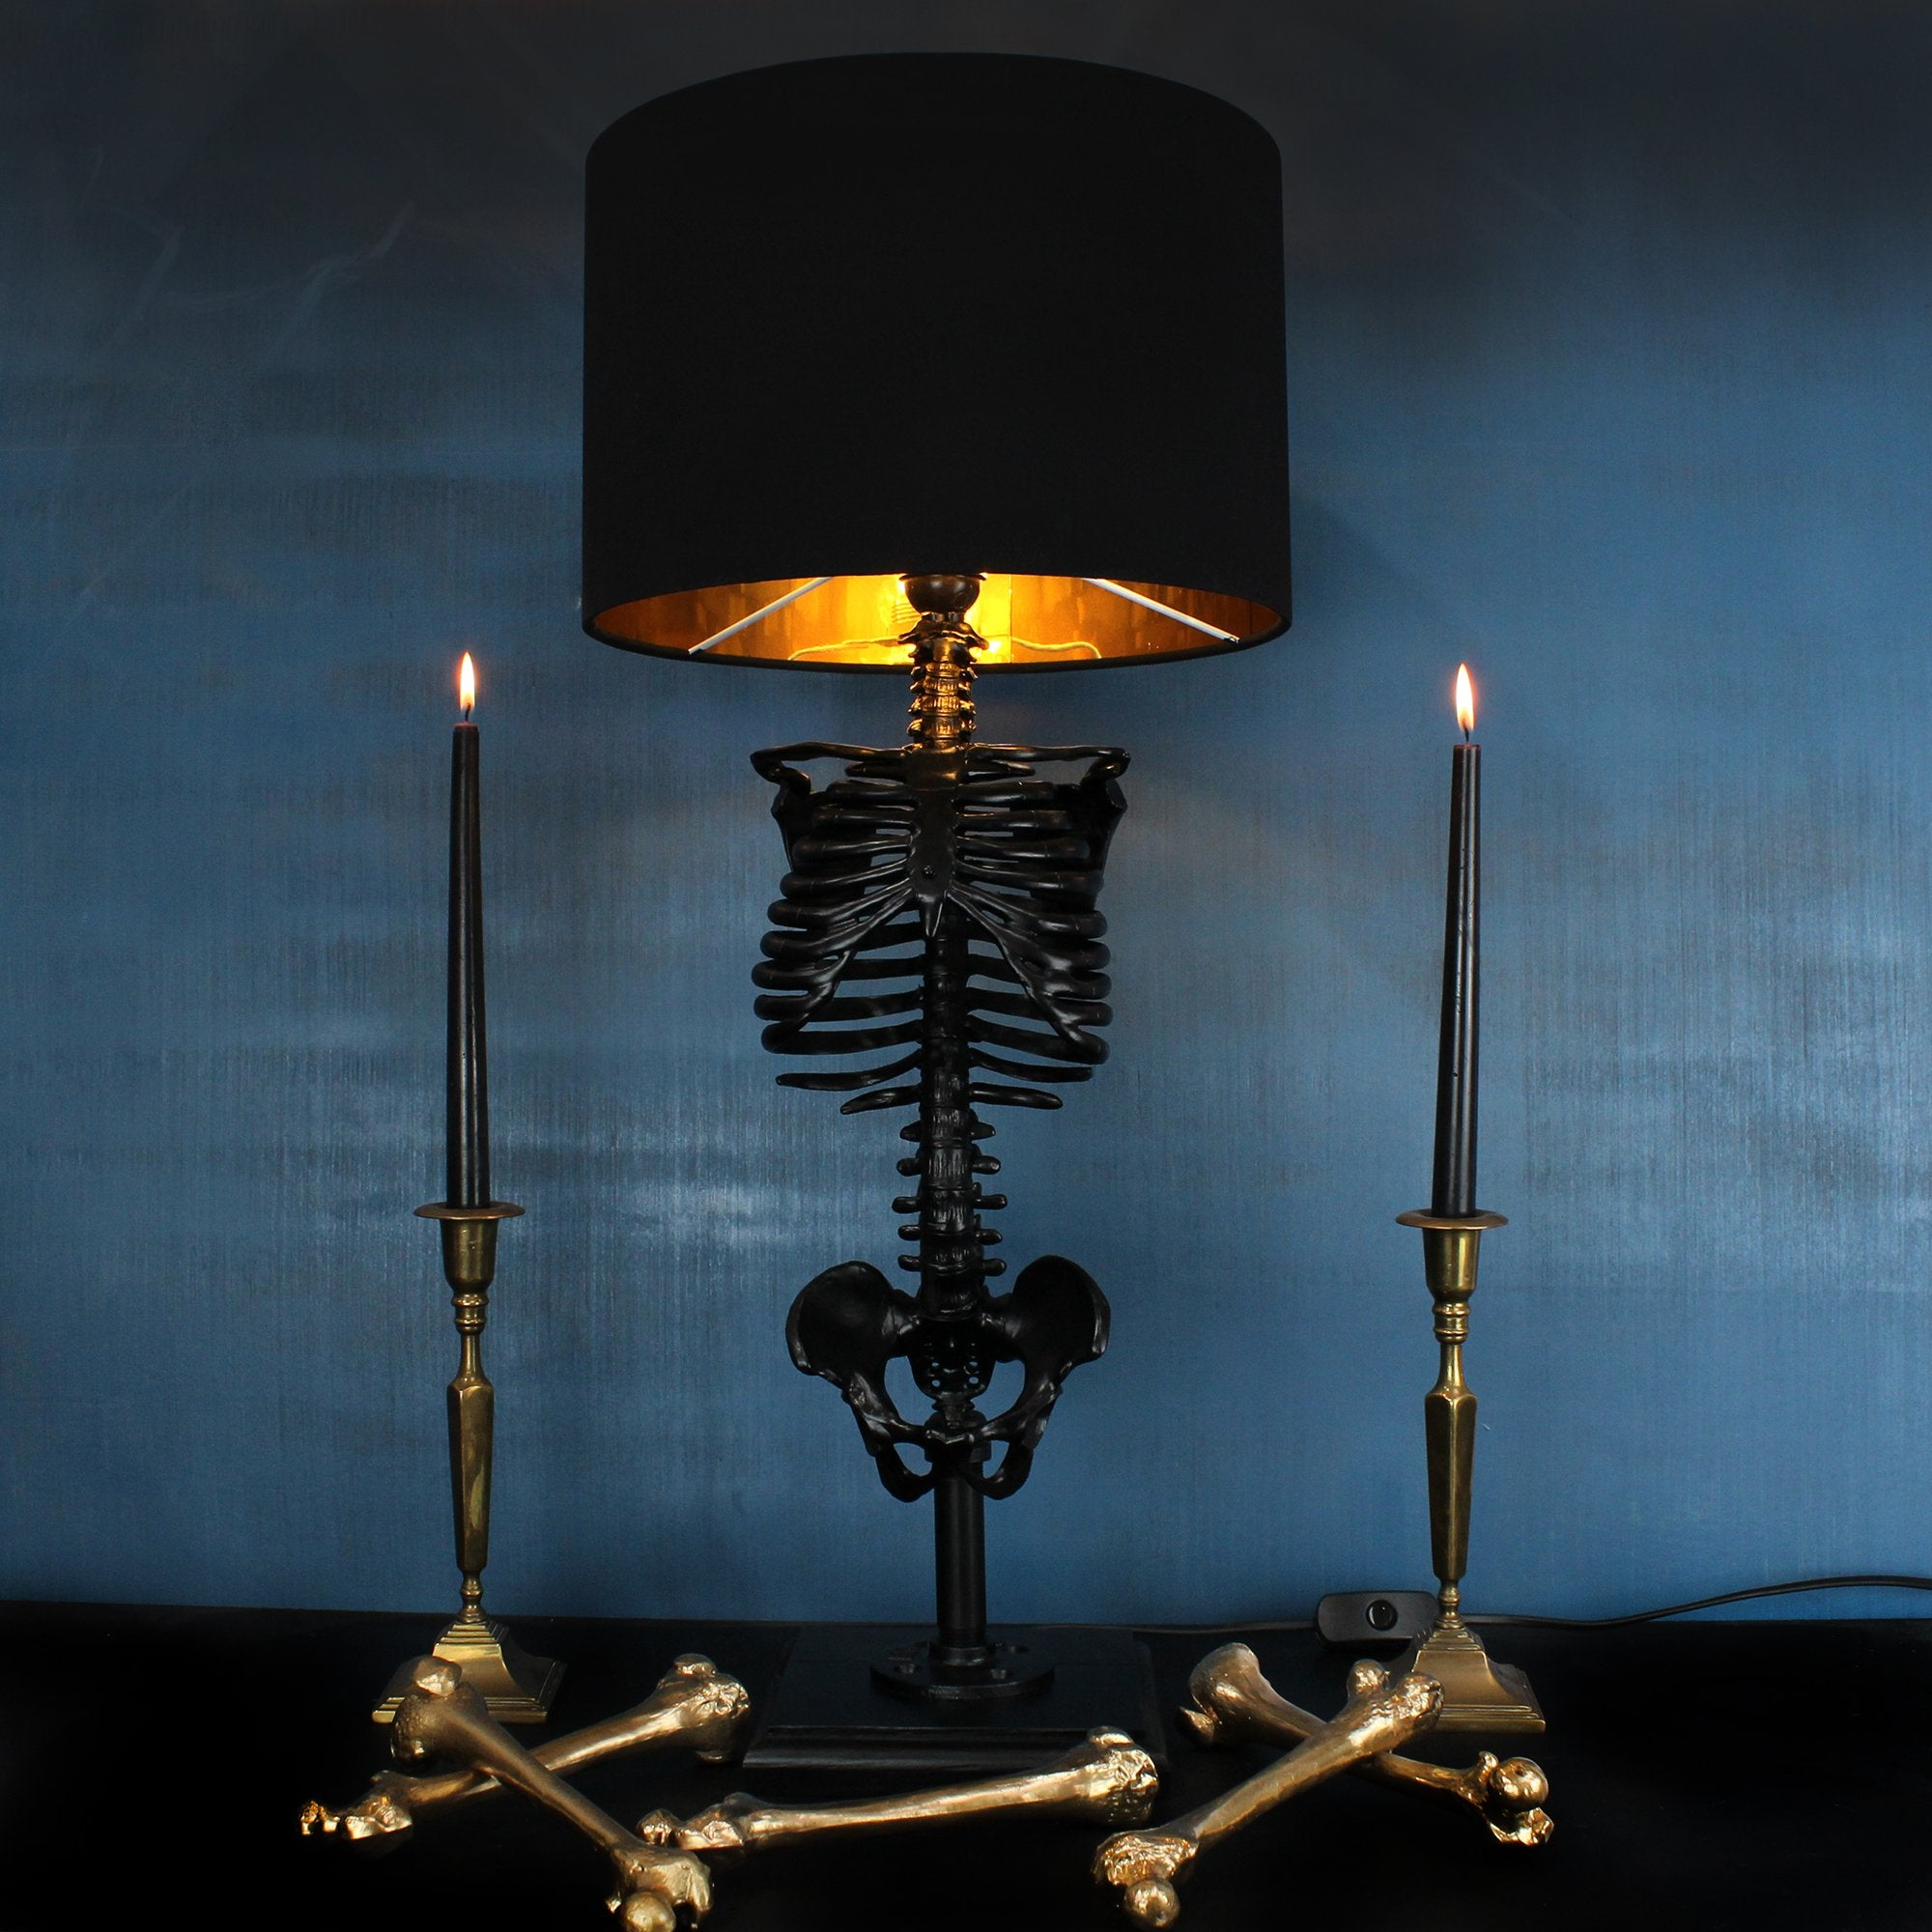 The Skeleton Table Lamp